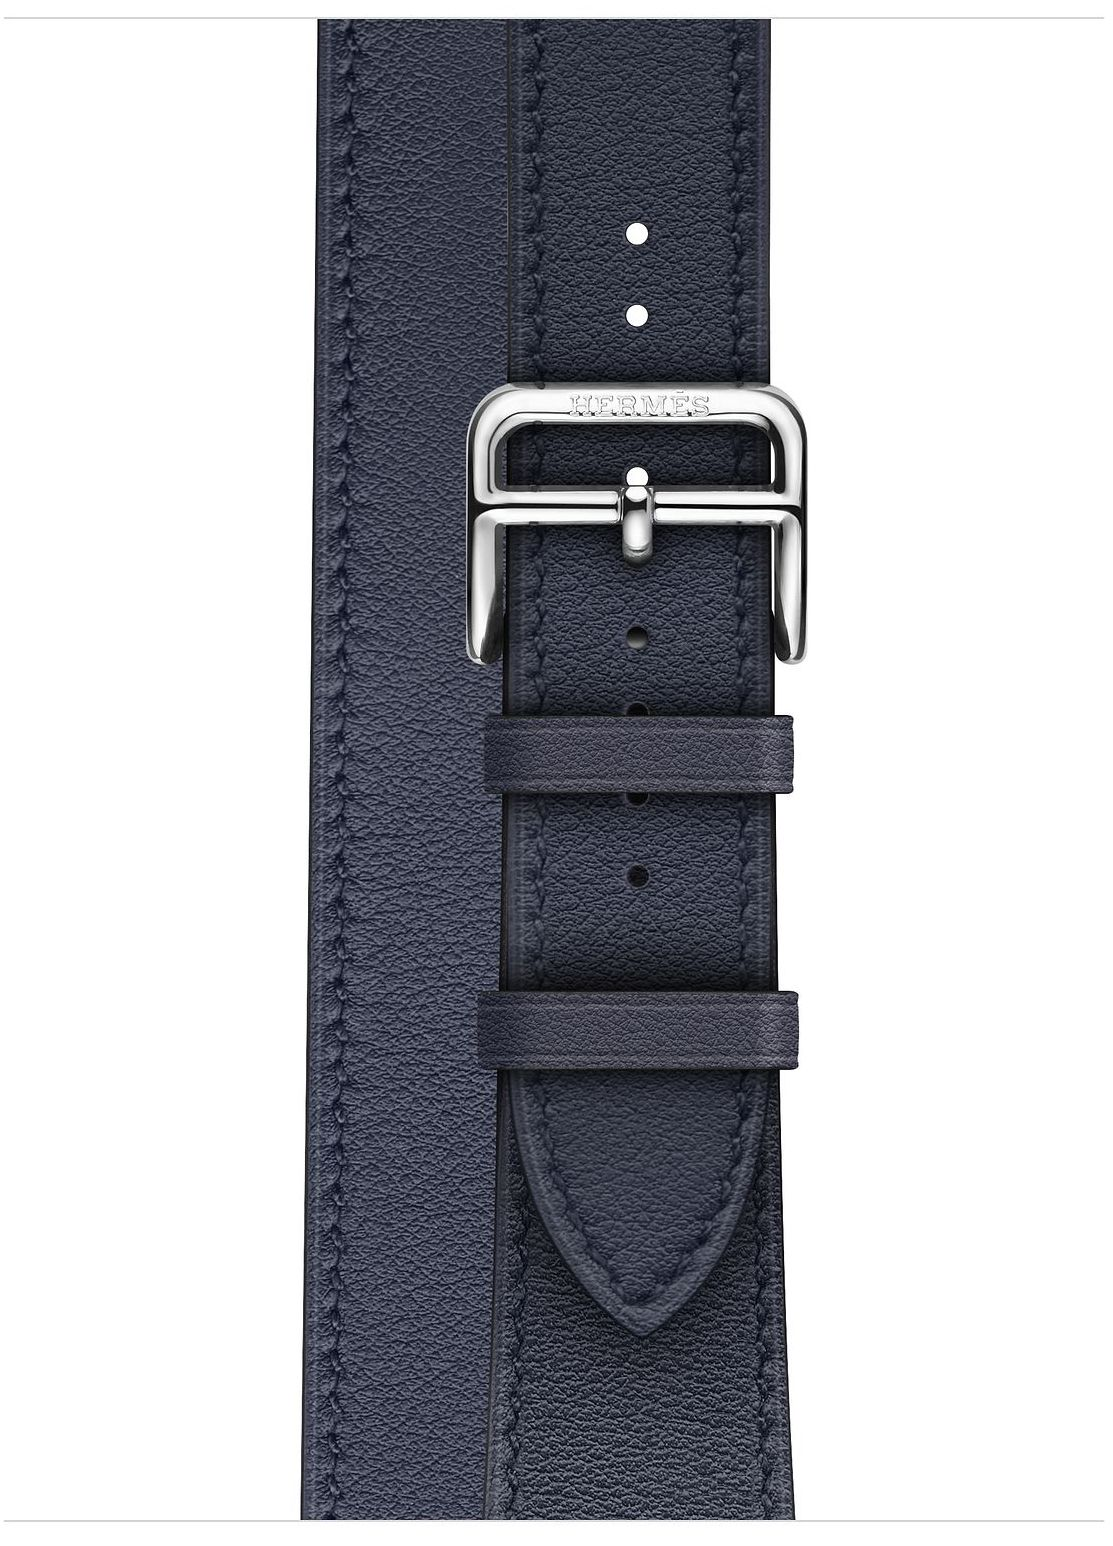 Часы Apple Watch Hermès Series 4 GPS+Cellular 40mm Stainless Steel Case with Bleu Indigo Swift Leather Double Tour (MU6Q2), картинка 3